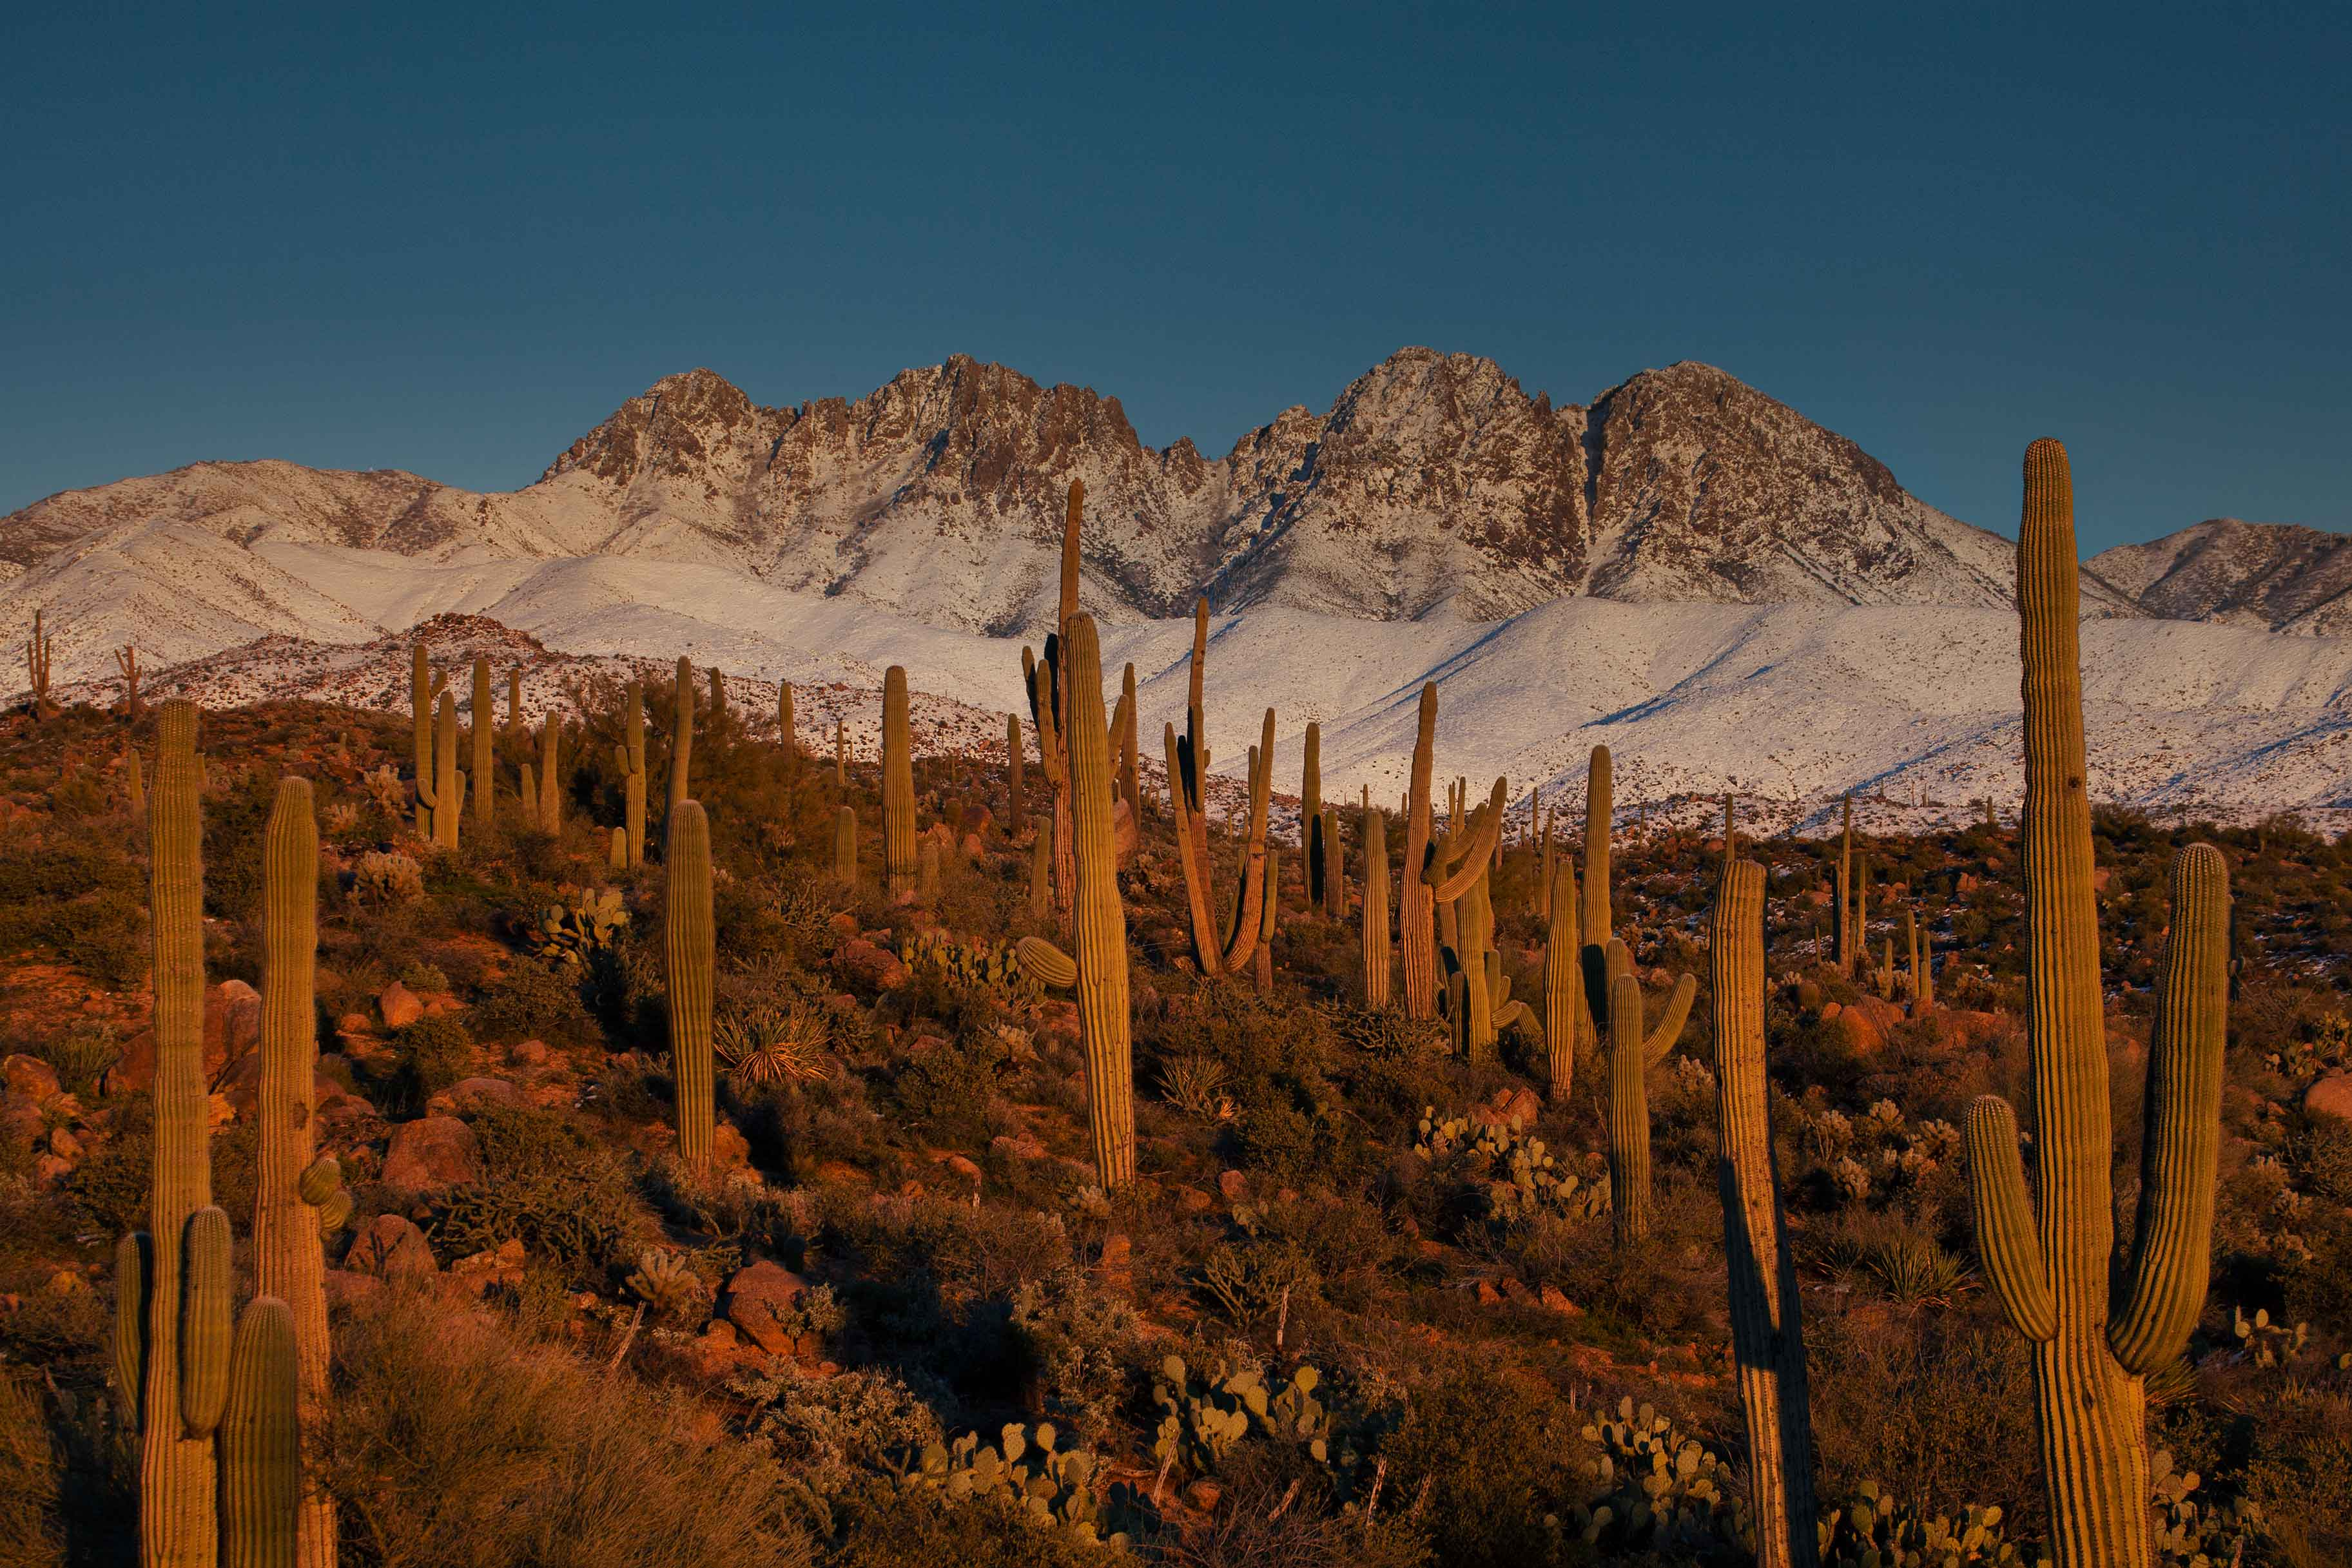 Four Peaks in the Arizona's Mazatzal Mts. covered in snow, with saguaro cactus in the foreground